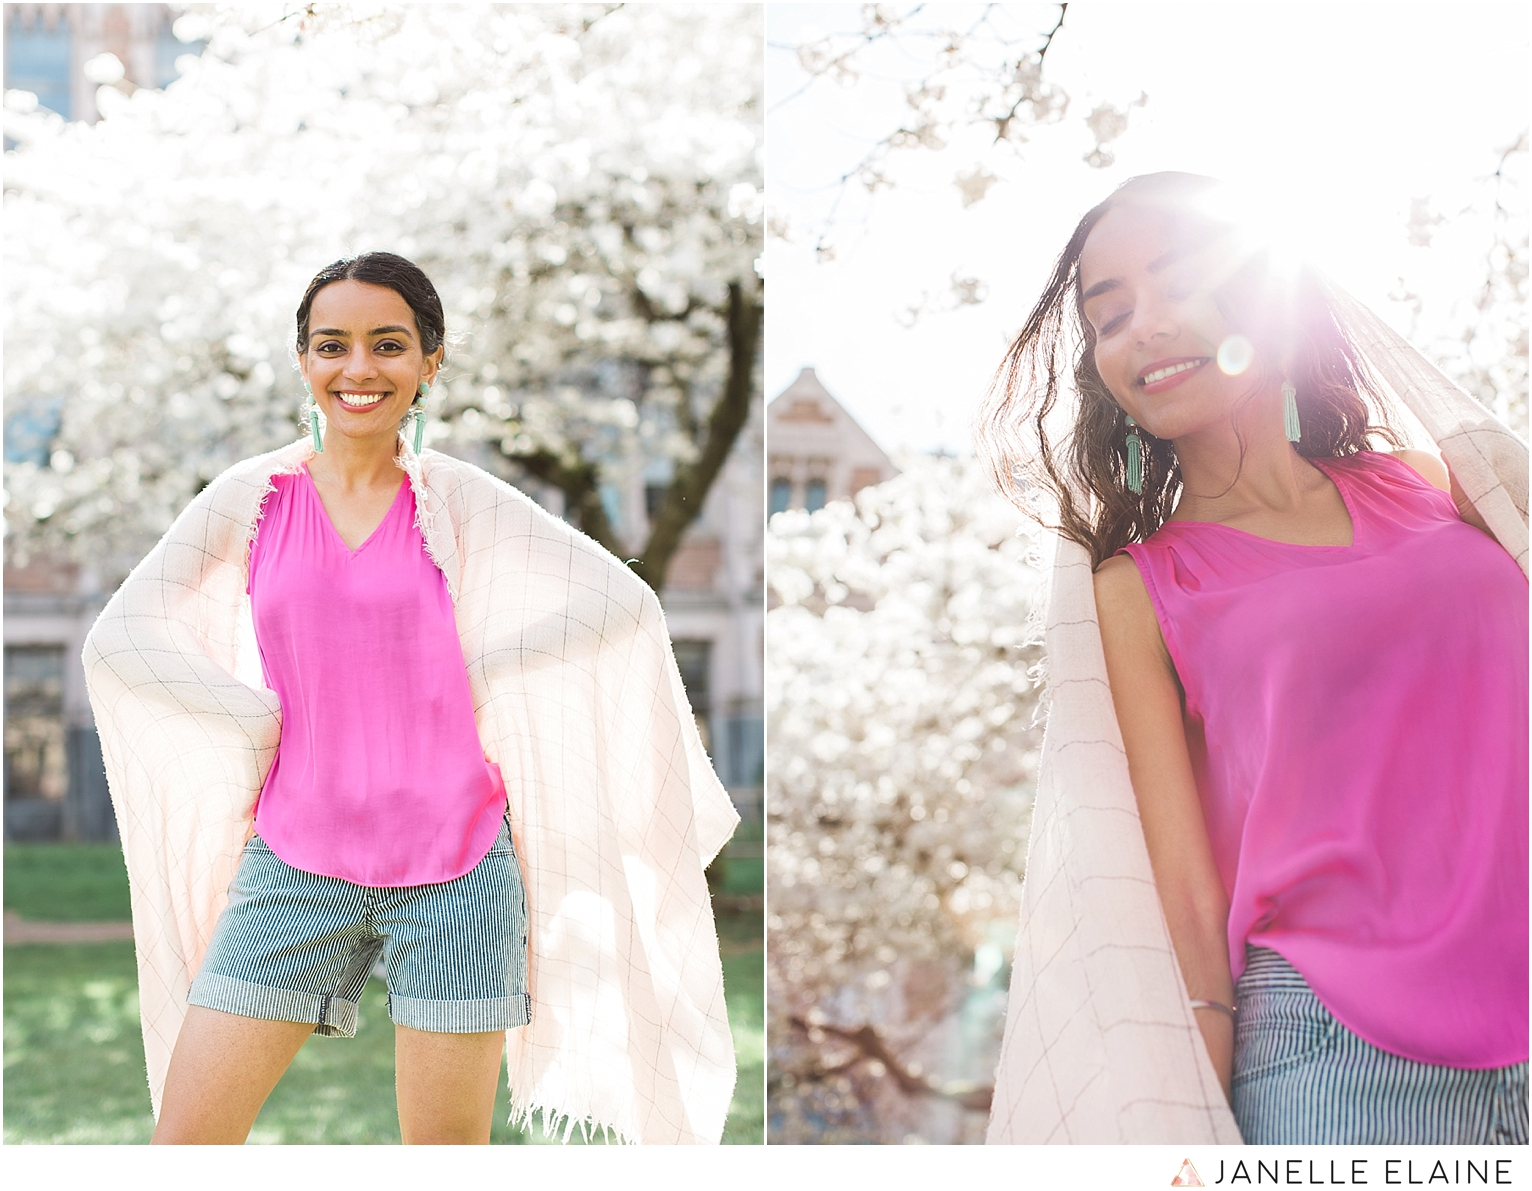 Sufience-Harkirat-spring portrait session-cherry blossoms-uw-seattle photographer janelle elaine-98.jpg